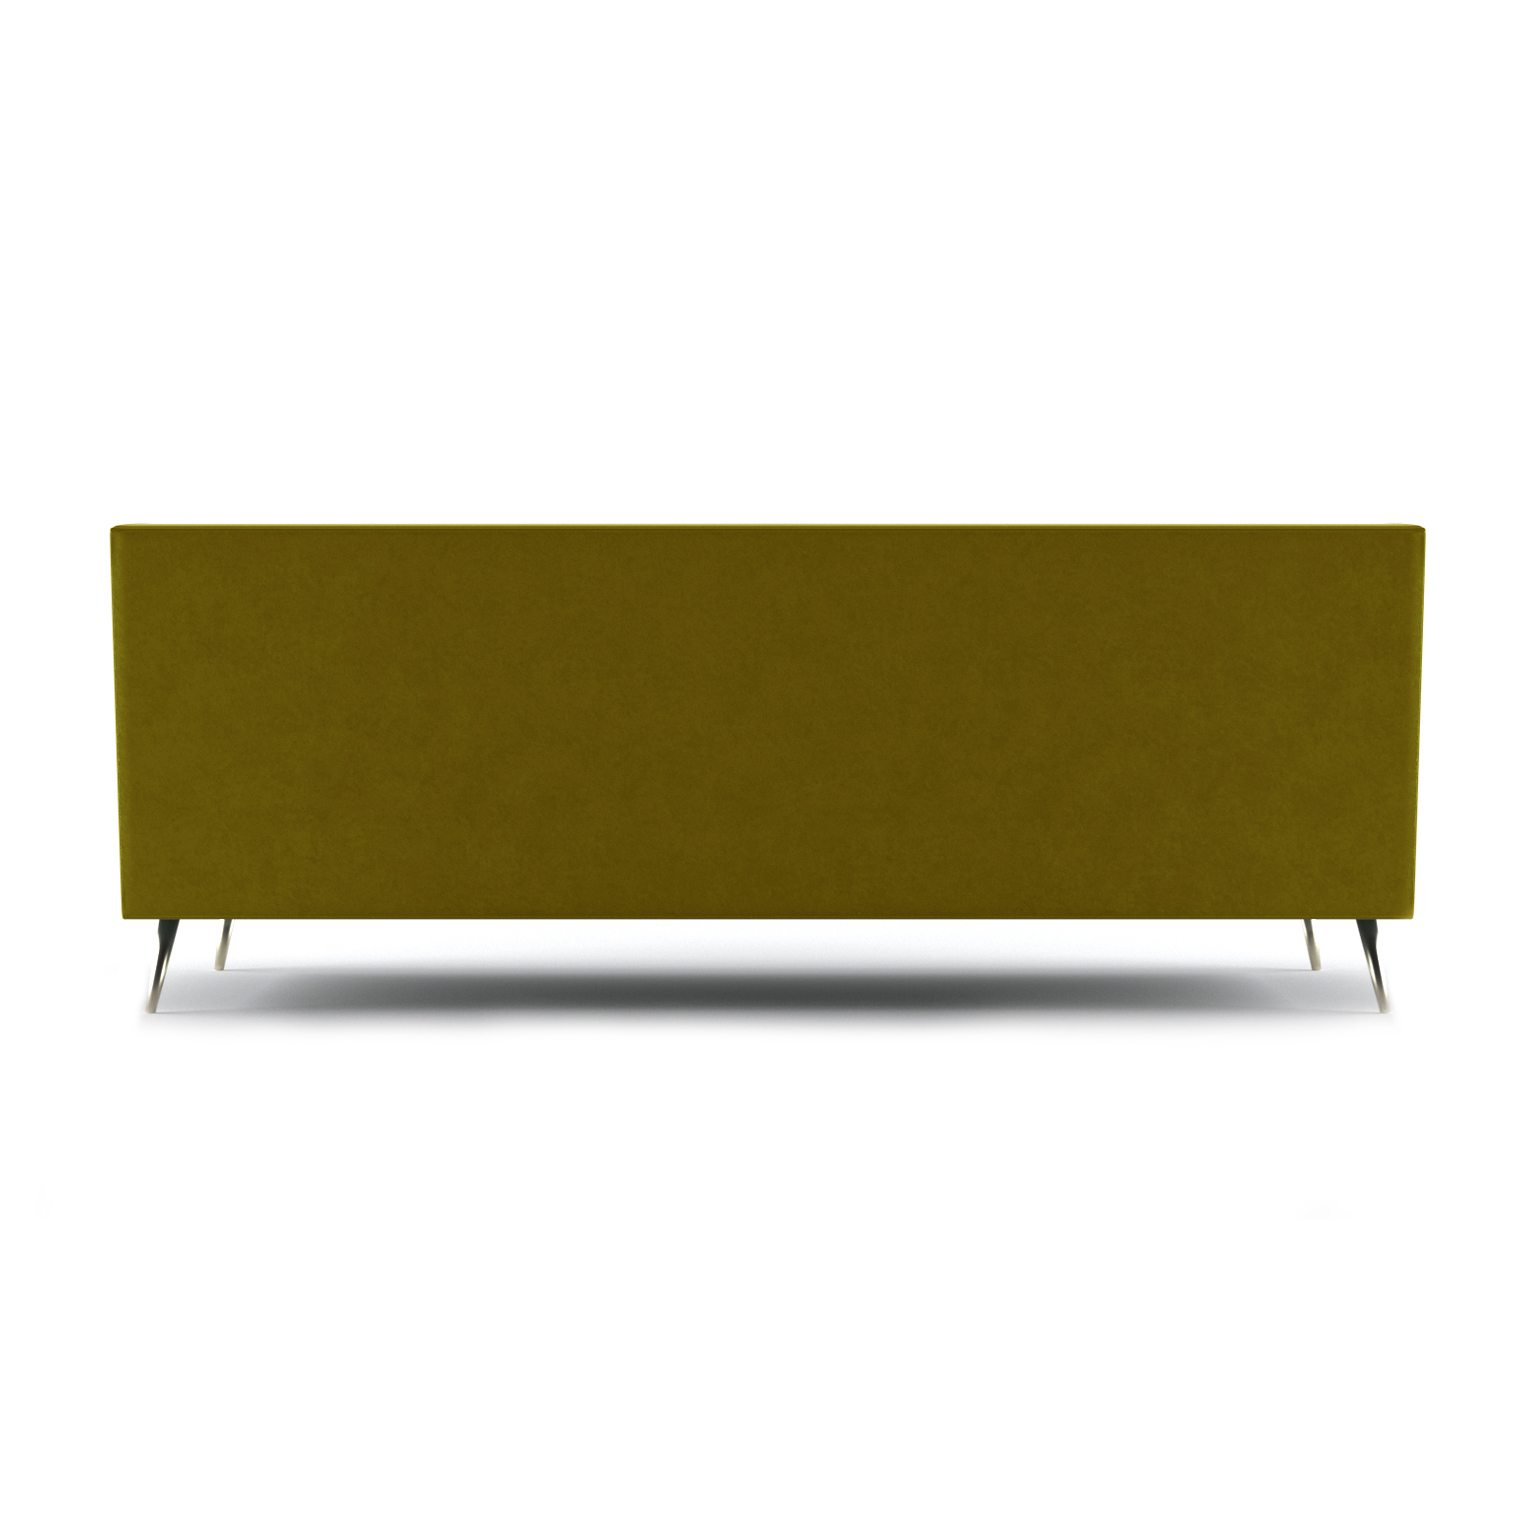 Connick Three and a Half Seater Sofa by Bonham & Bonham Gold 07